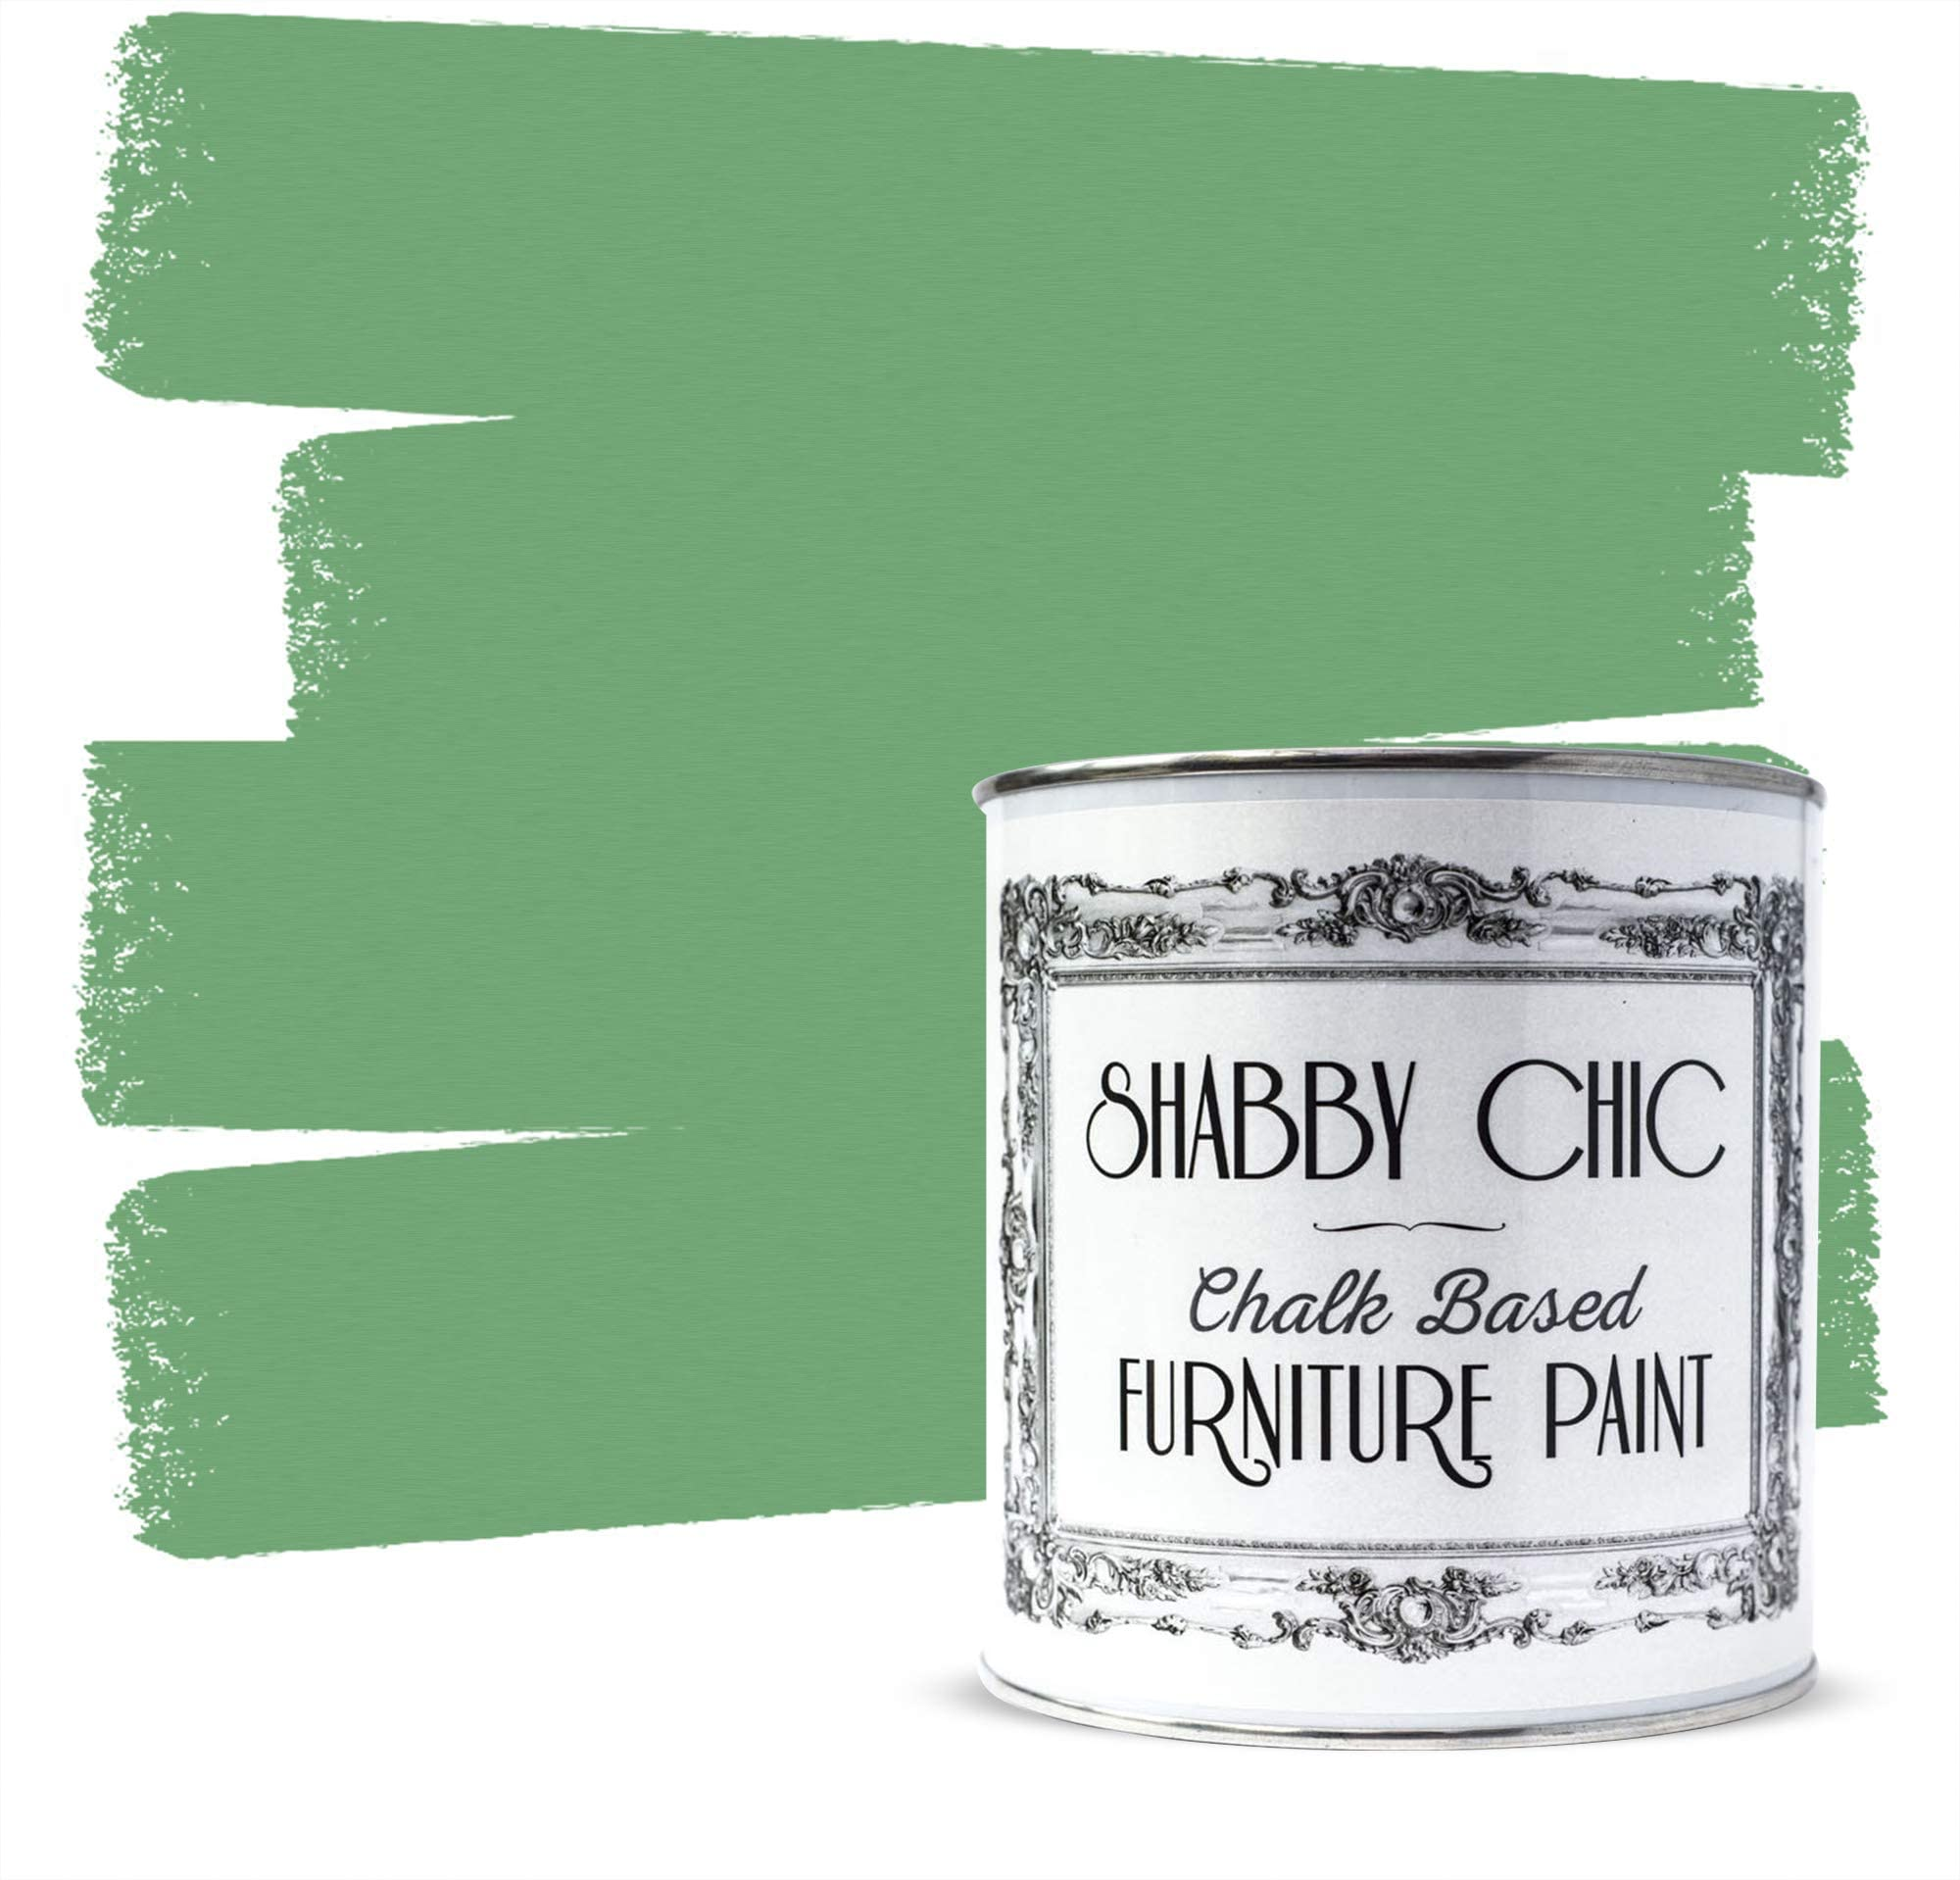 Shabby Chic Furniture Chalk Paint: Chalk Based Furniture and Craft Paint for Home Decor, DIY Projects, Wood Furniture - Chalked Interior Paints with Rustic Matte Finish - Liter - Cottage Green